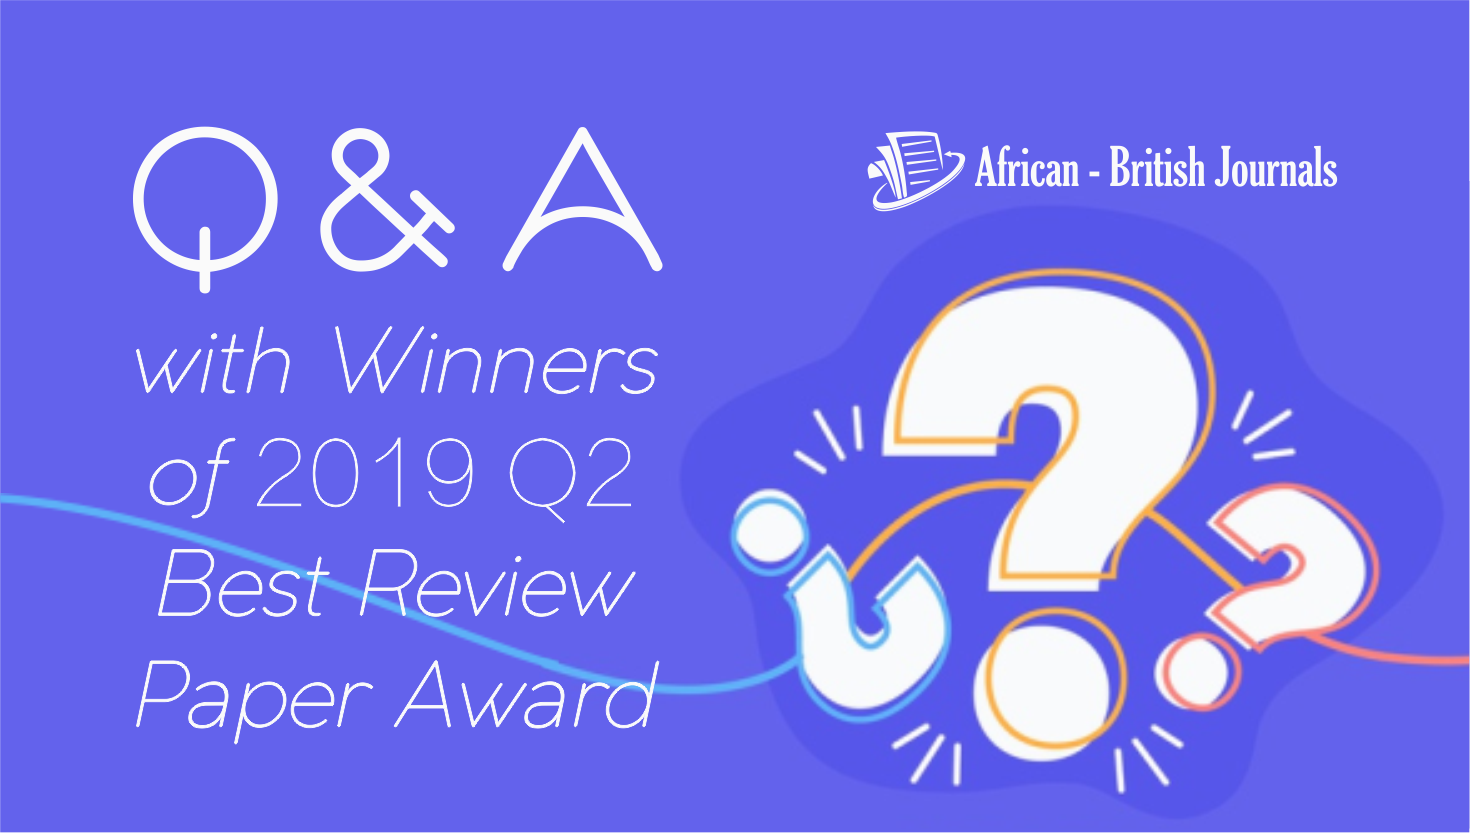 Q&A with Khoirul Hikmah, Winner of the 2019 Q2 Best Review Paper Award